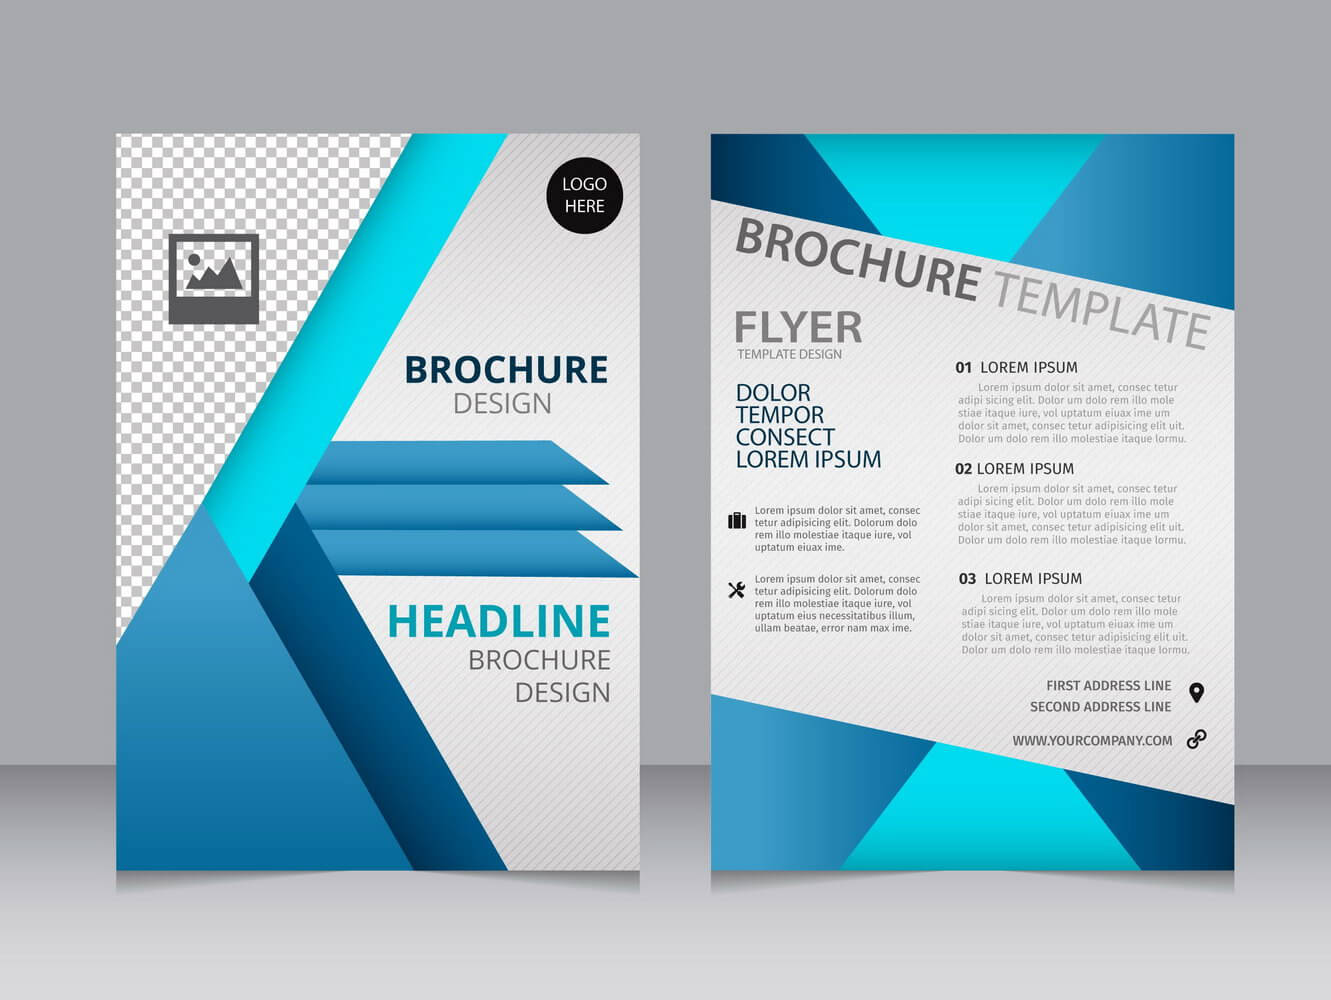 005 Blank Brochure Templates Free Download Word Template Pertaining To Brochure Template Illustrator Free Download